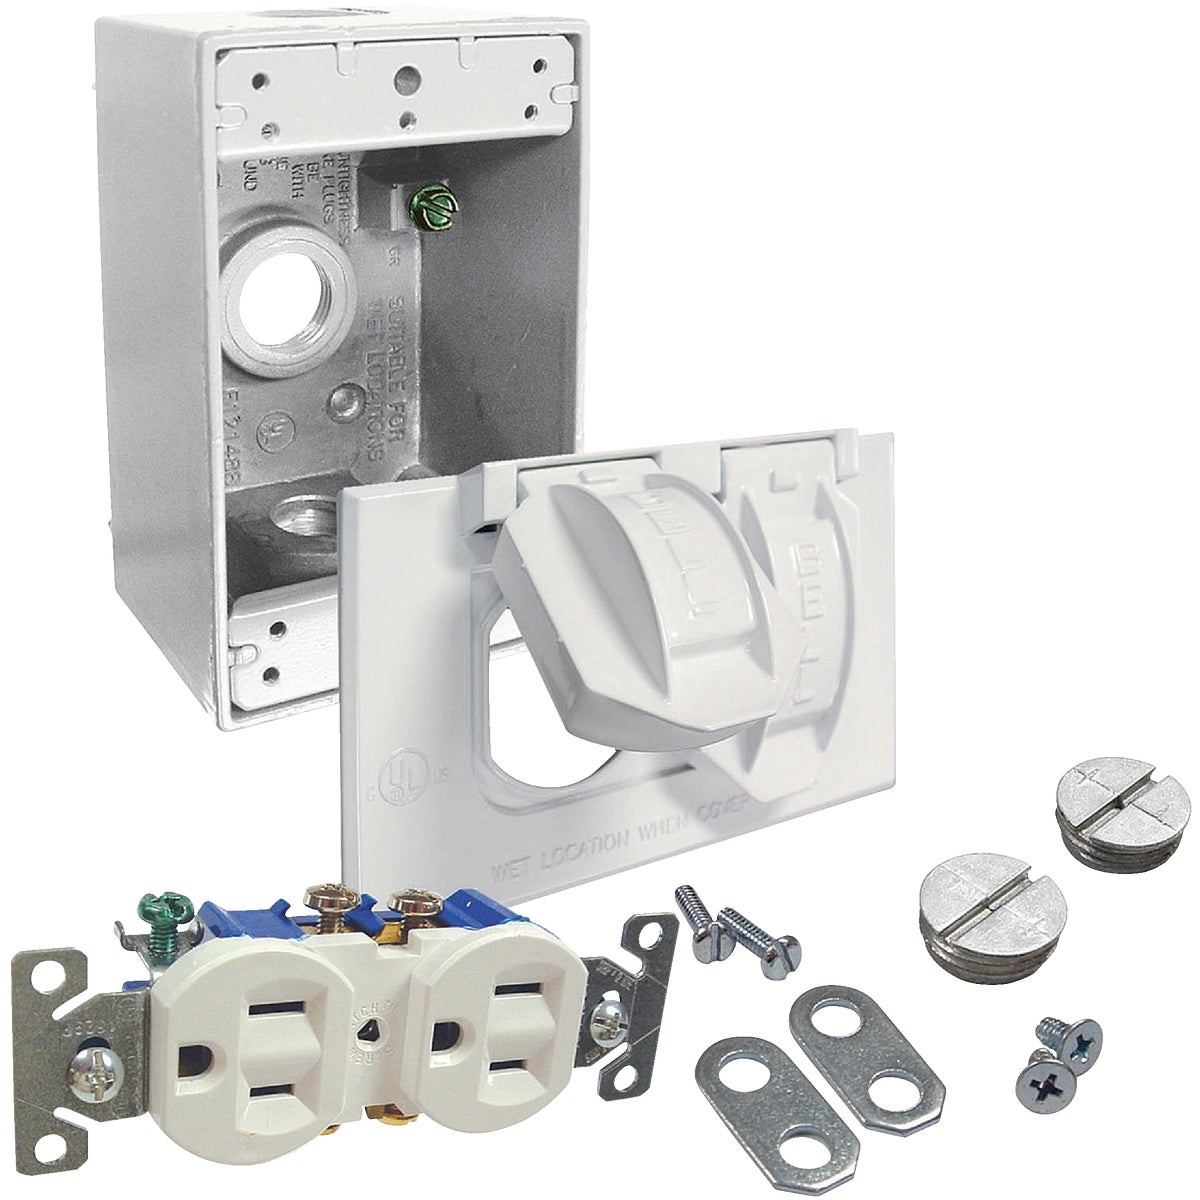 Bell Tamper Resistant Outdoor Outlet Kit, 5839-6WRTR